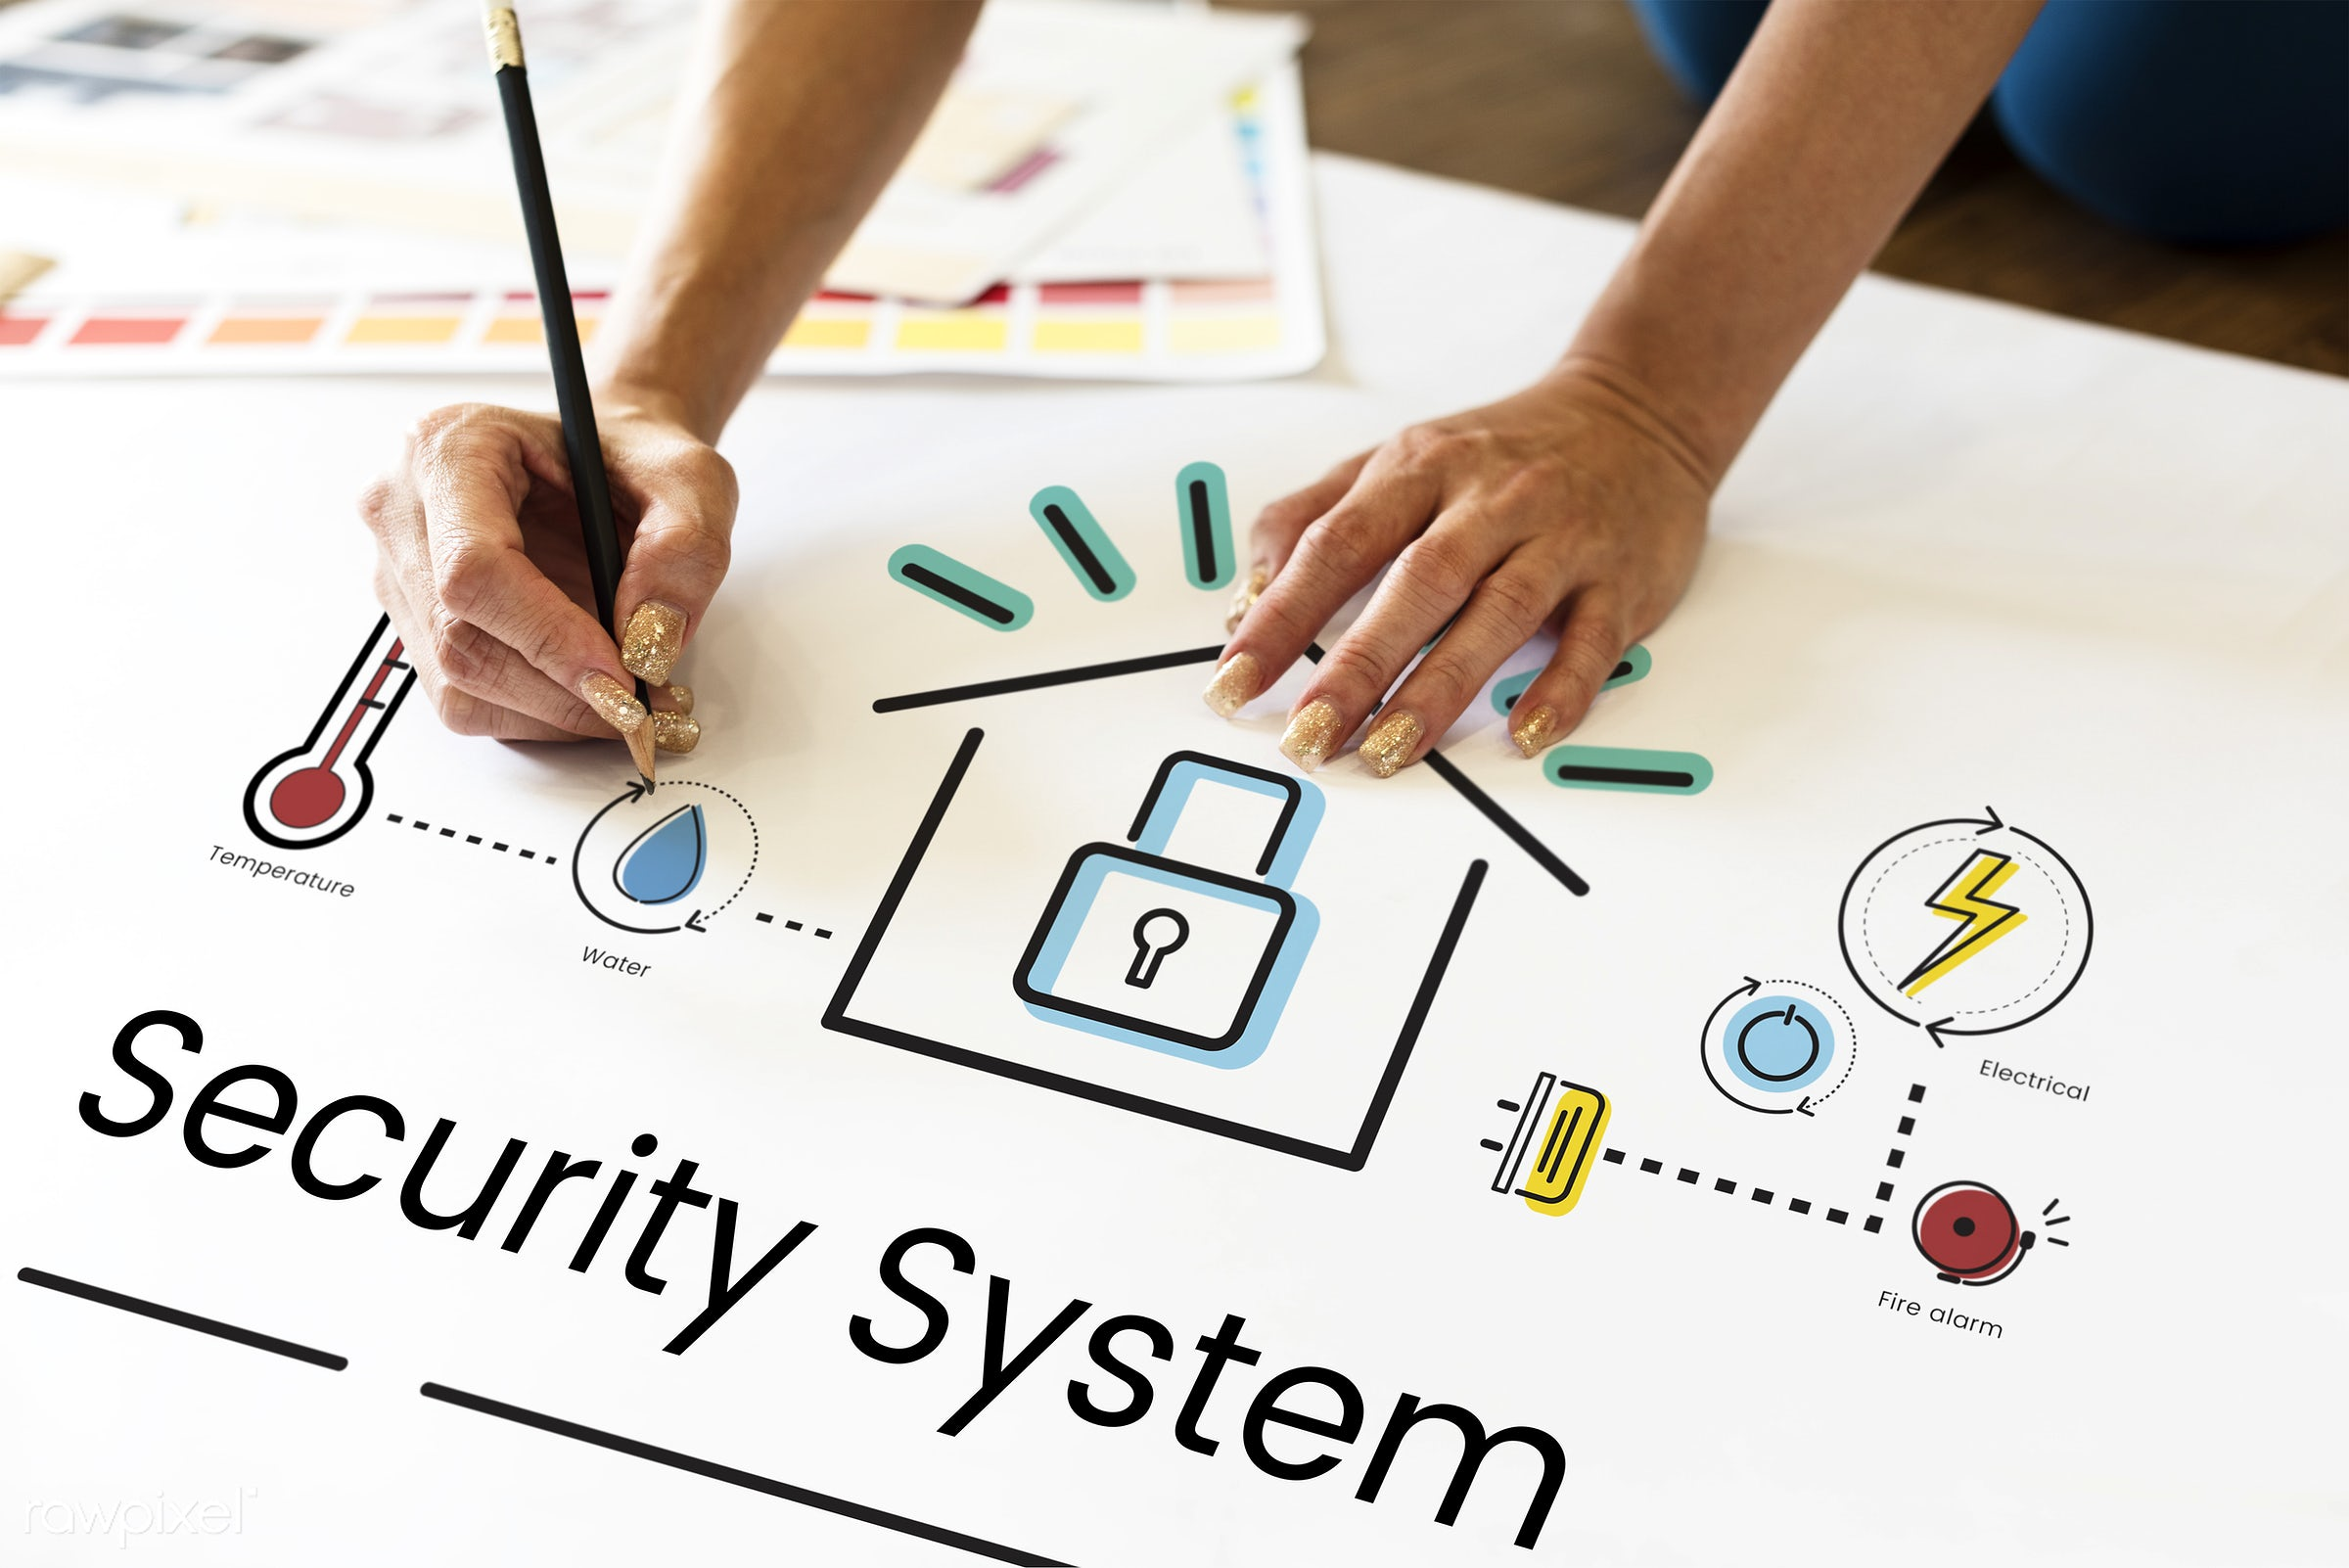 Security system - automation, art, control, creation, creative, creativity, design, drawing, graphic, hands, home, home...